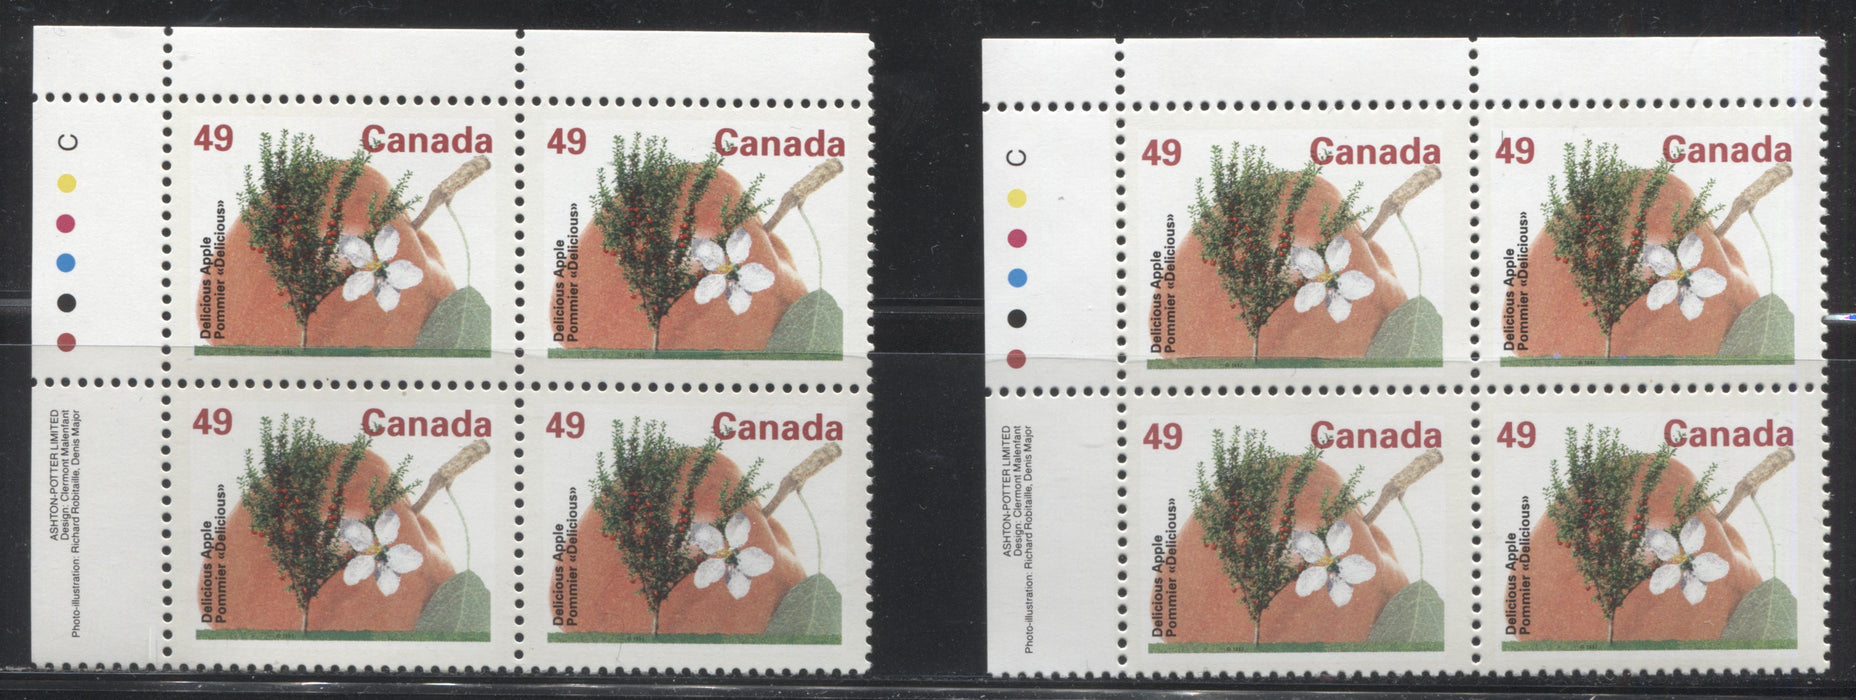 Canada #1364 49c Delicious Apple, 1991-1998 Fruit & Flag Definitive Issue, Two VFNH UL Inscription Blocks, Perf. 13.1 on Dead/NF Coated Papers Paper, Each A Slightly Different Shade